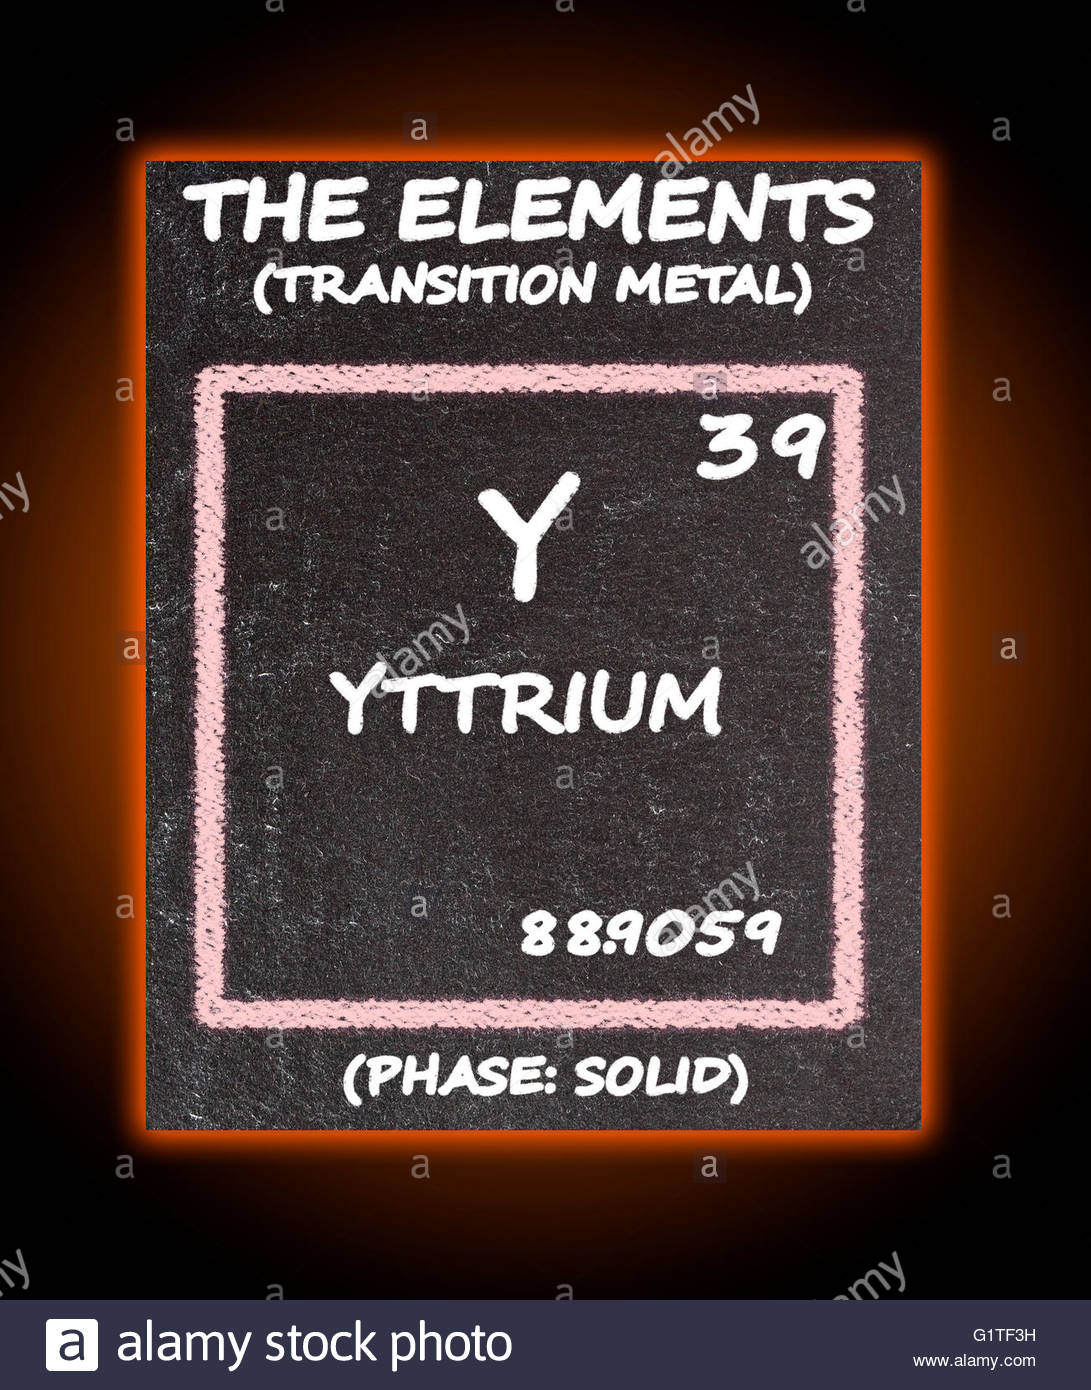 Yttrium details from the periodic table stock photo 104415573 alamy yttrium details from the periodic table urtaz Images